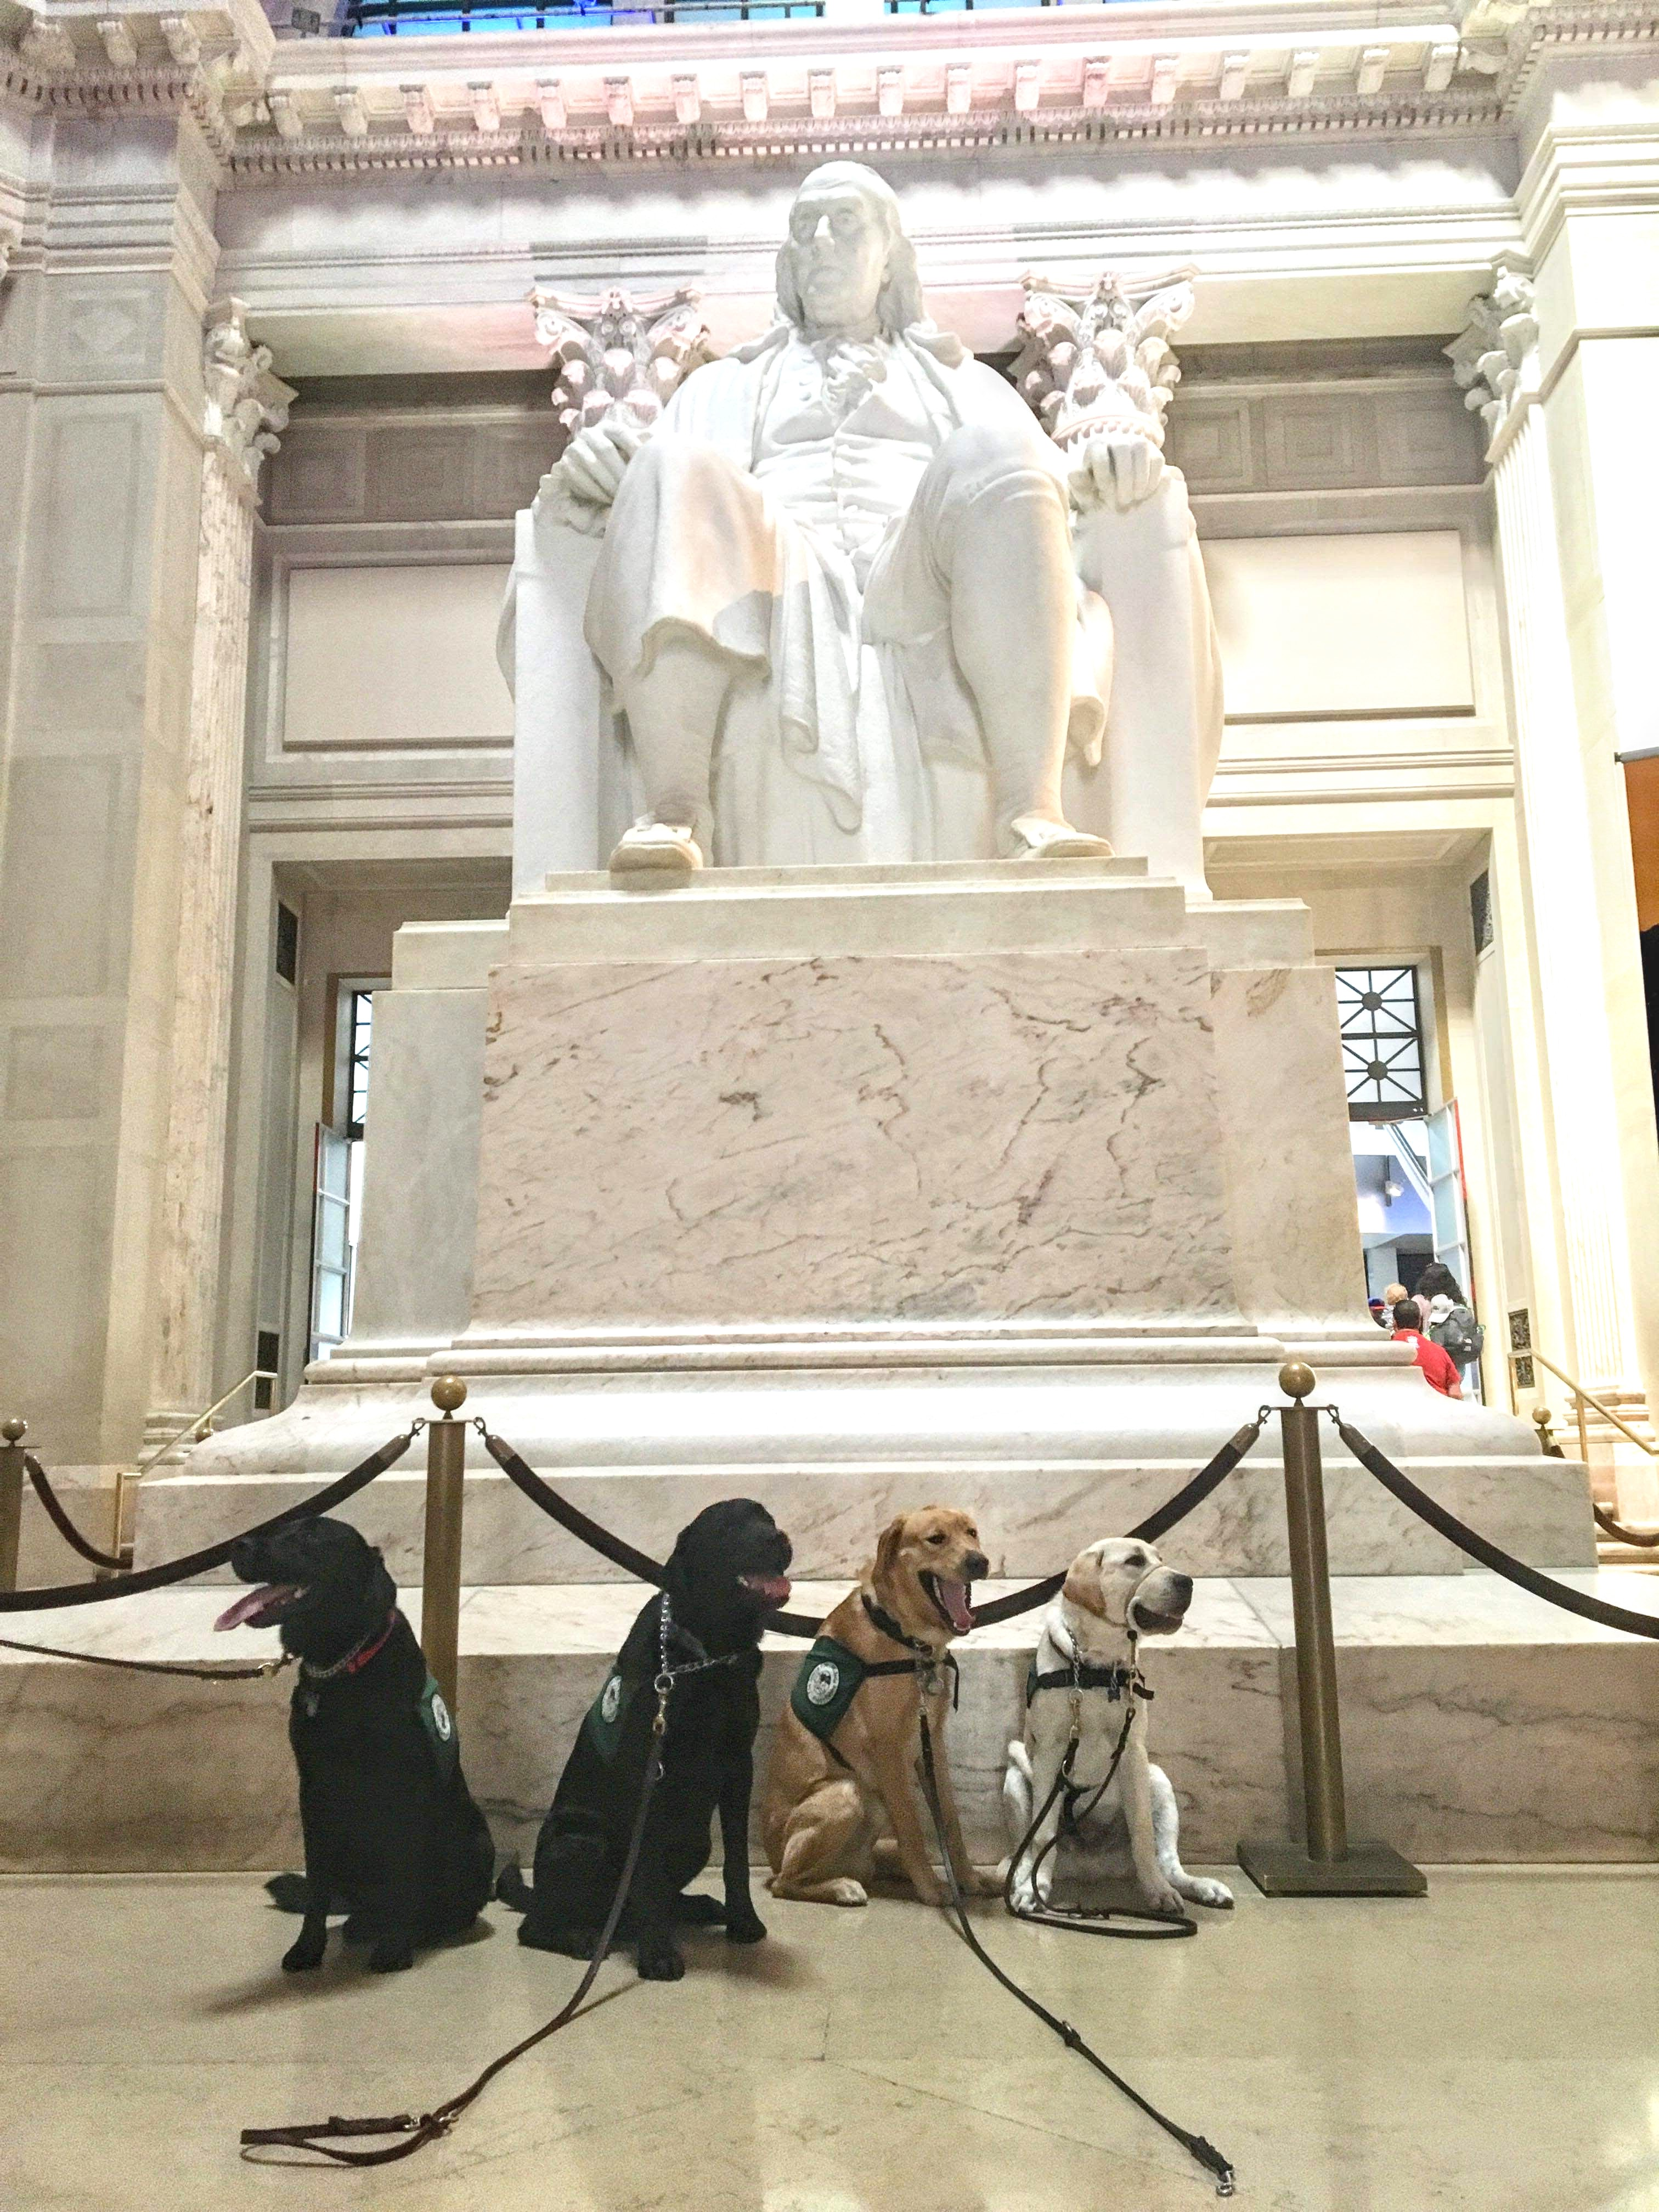 Dogs in front of the Franklin memorial